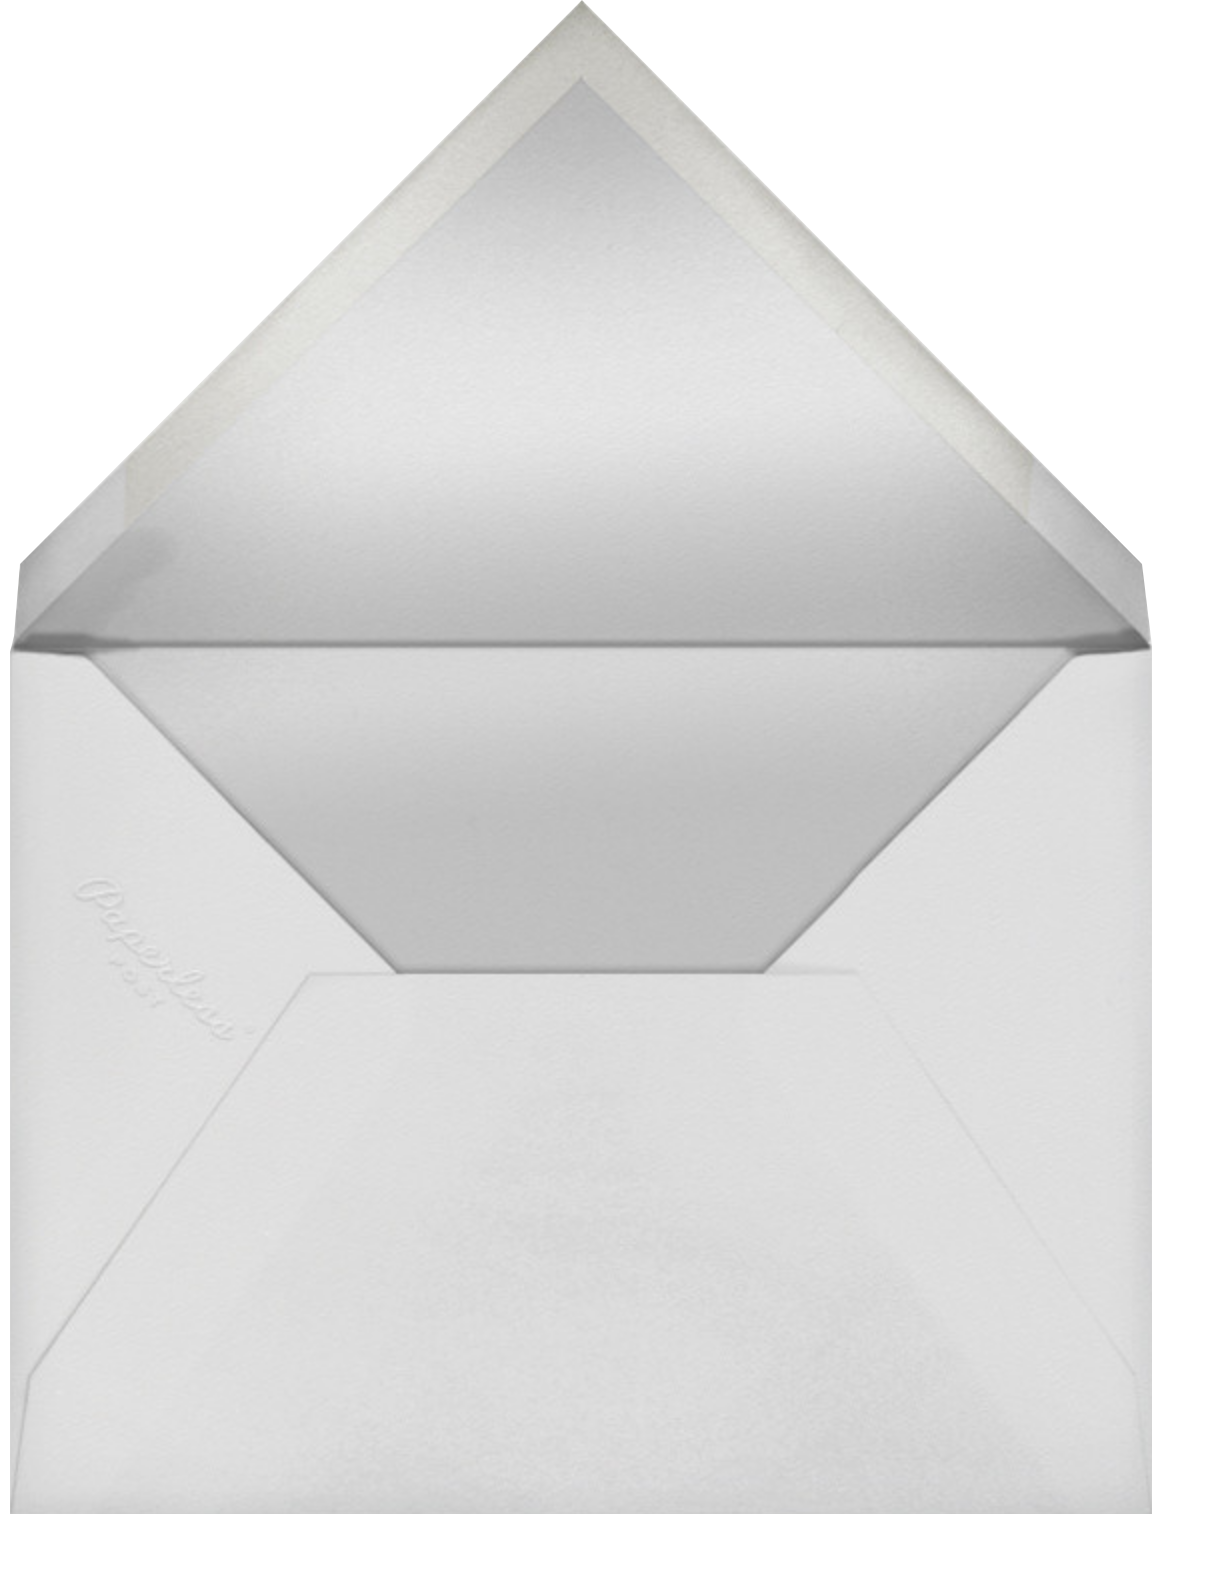 Char Broil - Paperless Post - Father's Day - envelope back